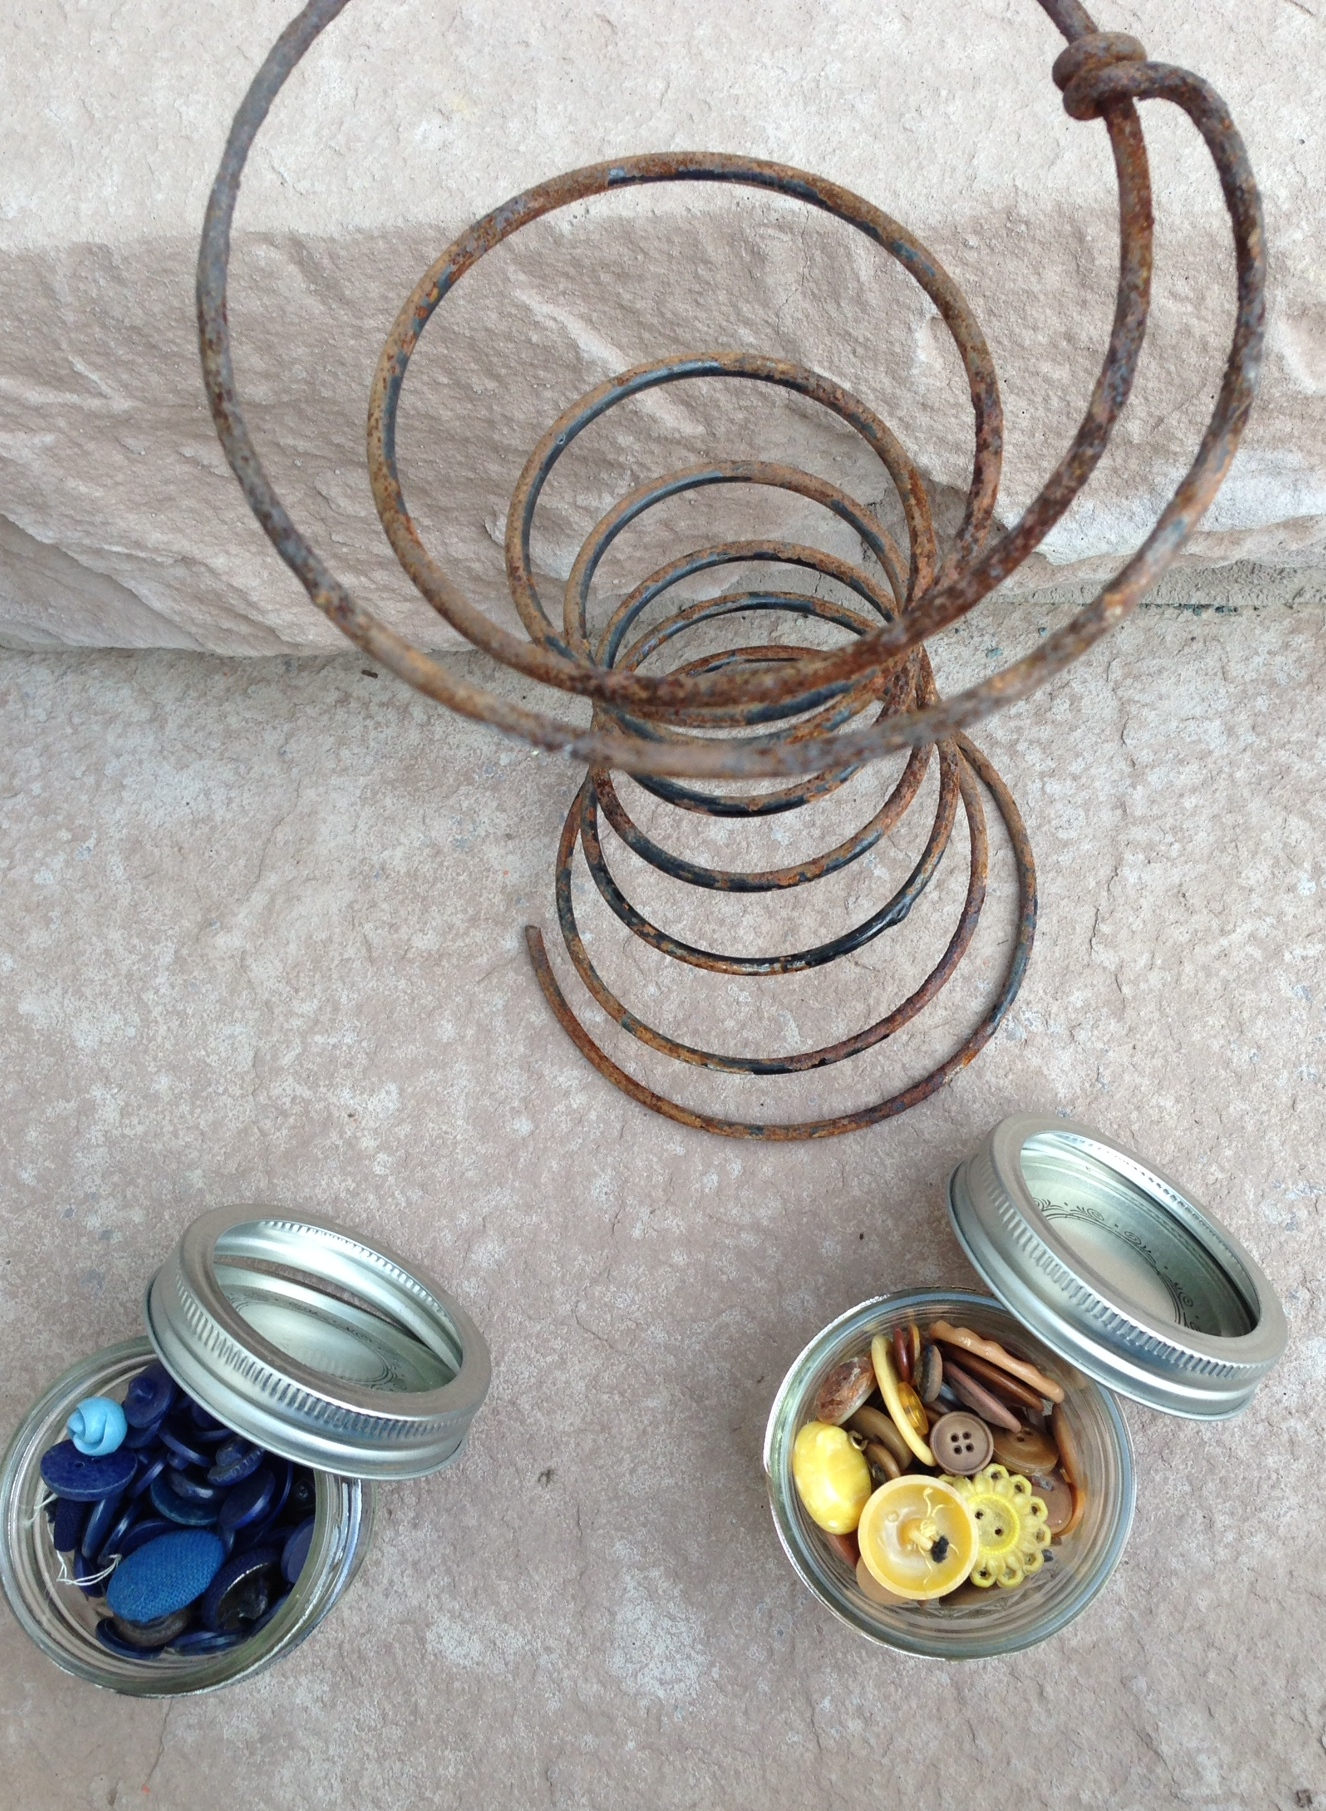 Here is my latest purchase from the Barn Sale. I use the buttons in several of the garden pieces I make. I was intrigued by the rusted bedspring and will look for a way to use it in my work!